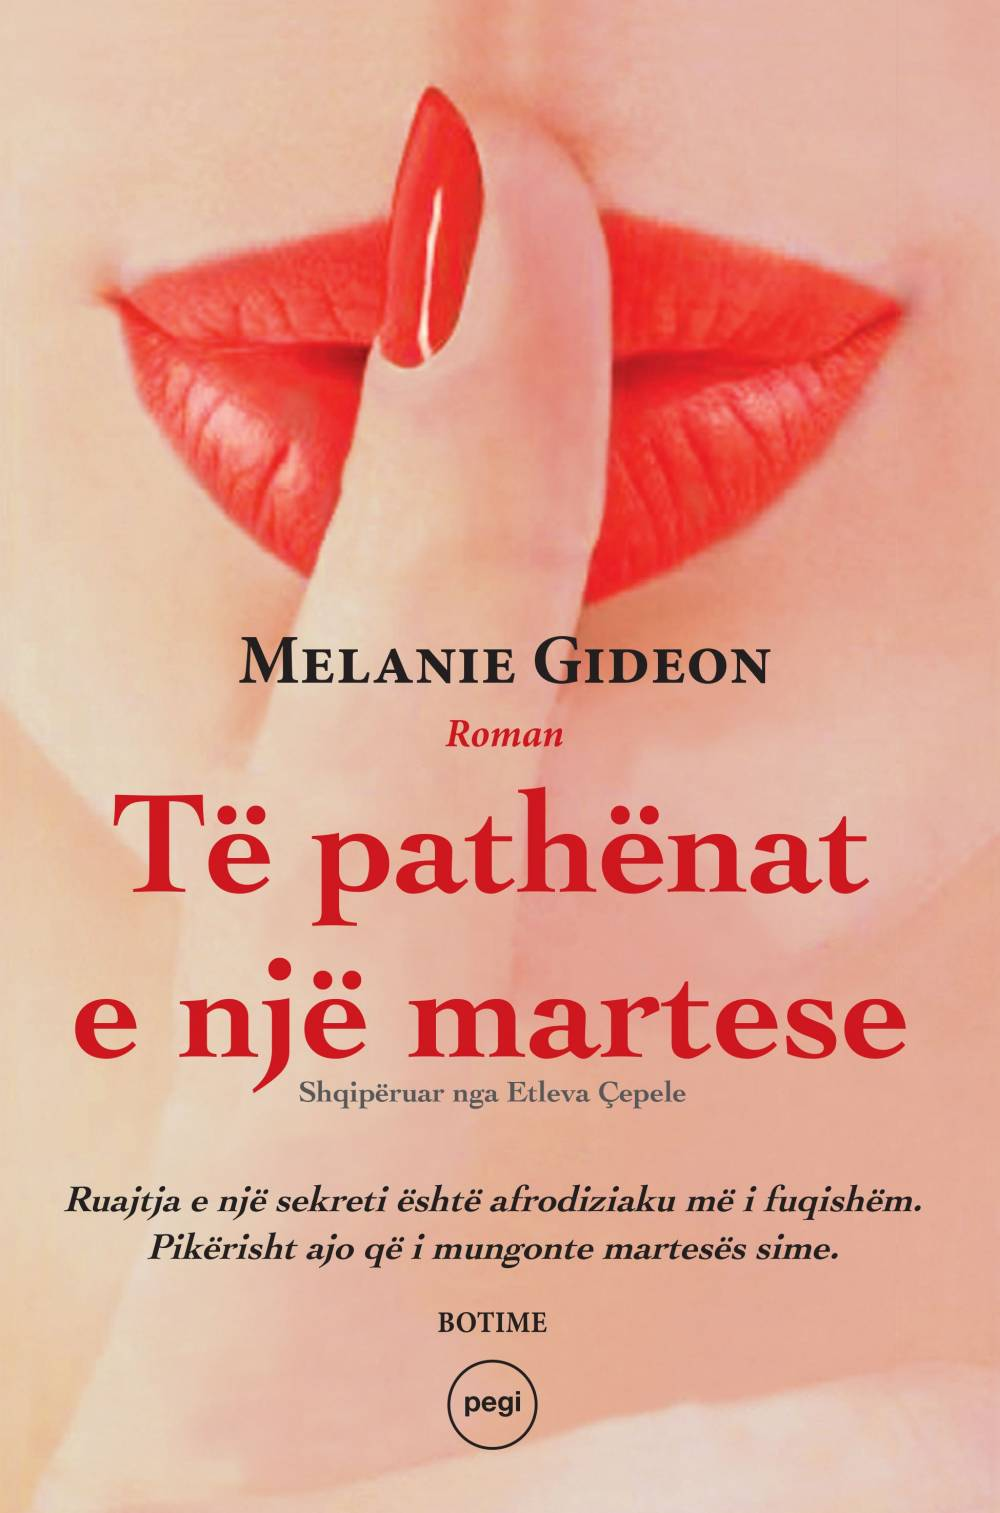 images/book-images/te-pathenat-e-nje-martese.jpg